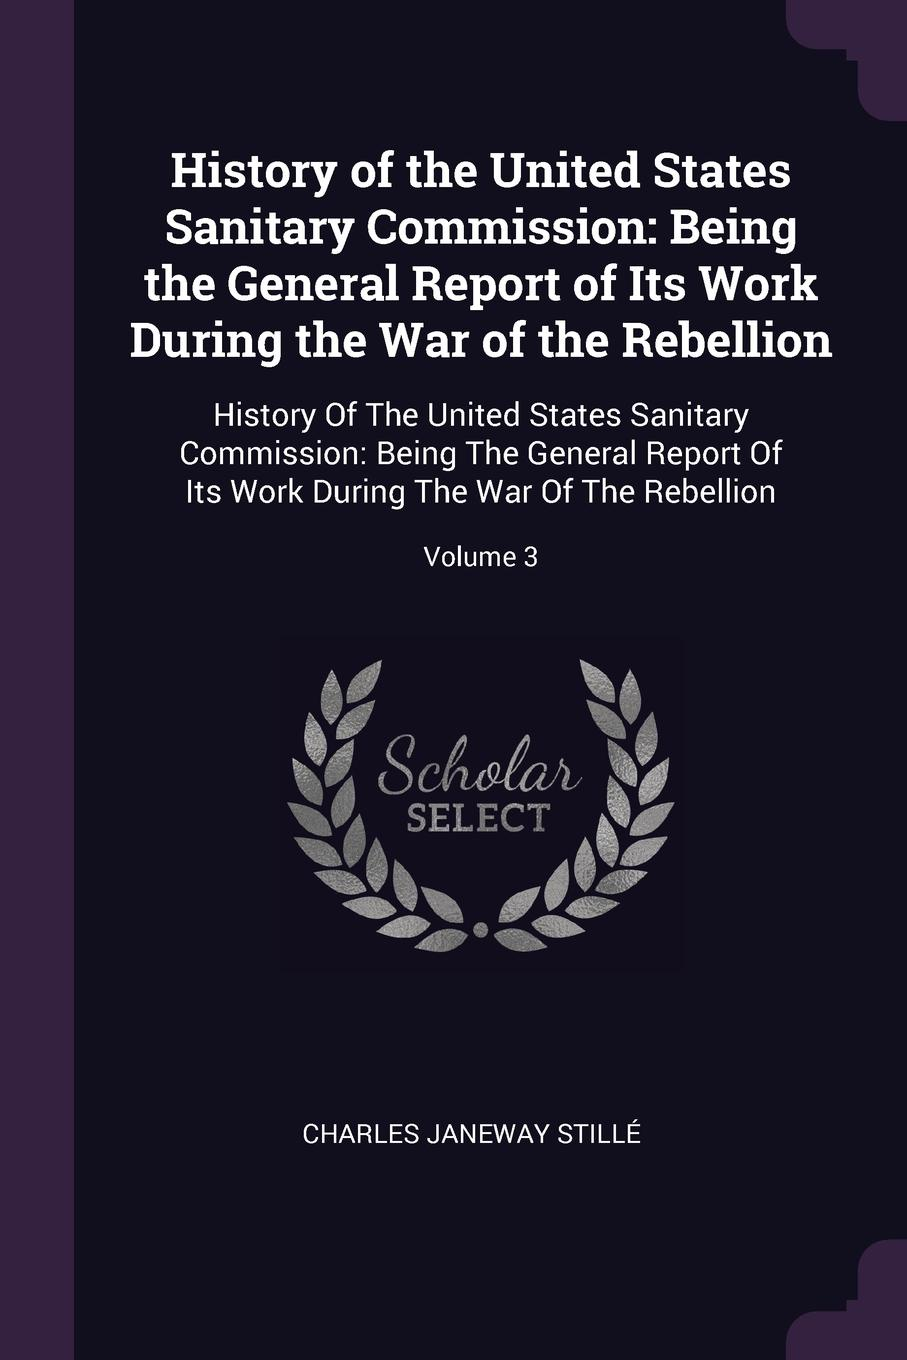 Charles Janeway Stillé History of the United States Sanitary Commission. Being the General Report of Its Work During the War of the Rebellion: History Of The United States Sanitary Commission: Being The General Report Of Its Work During The War Of The Rebellion; Volume 3 work the